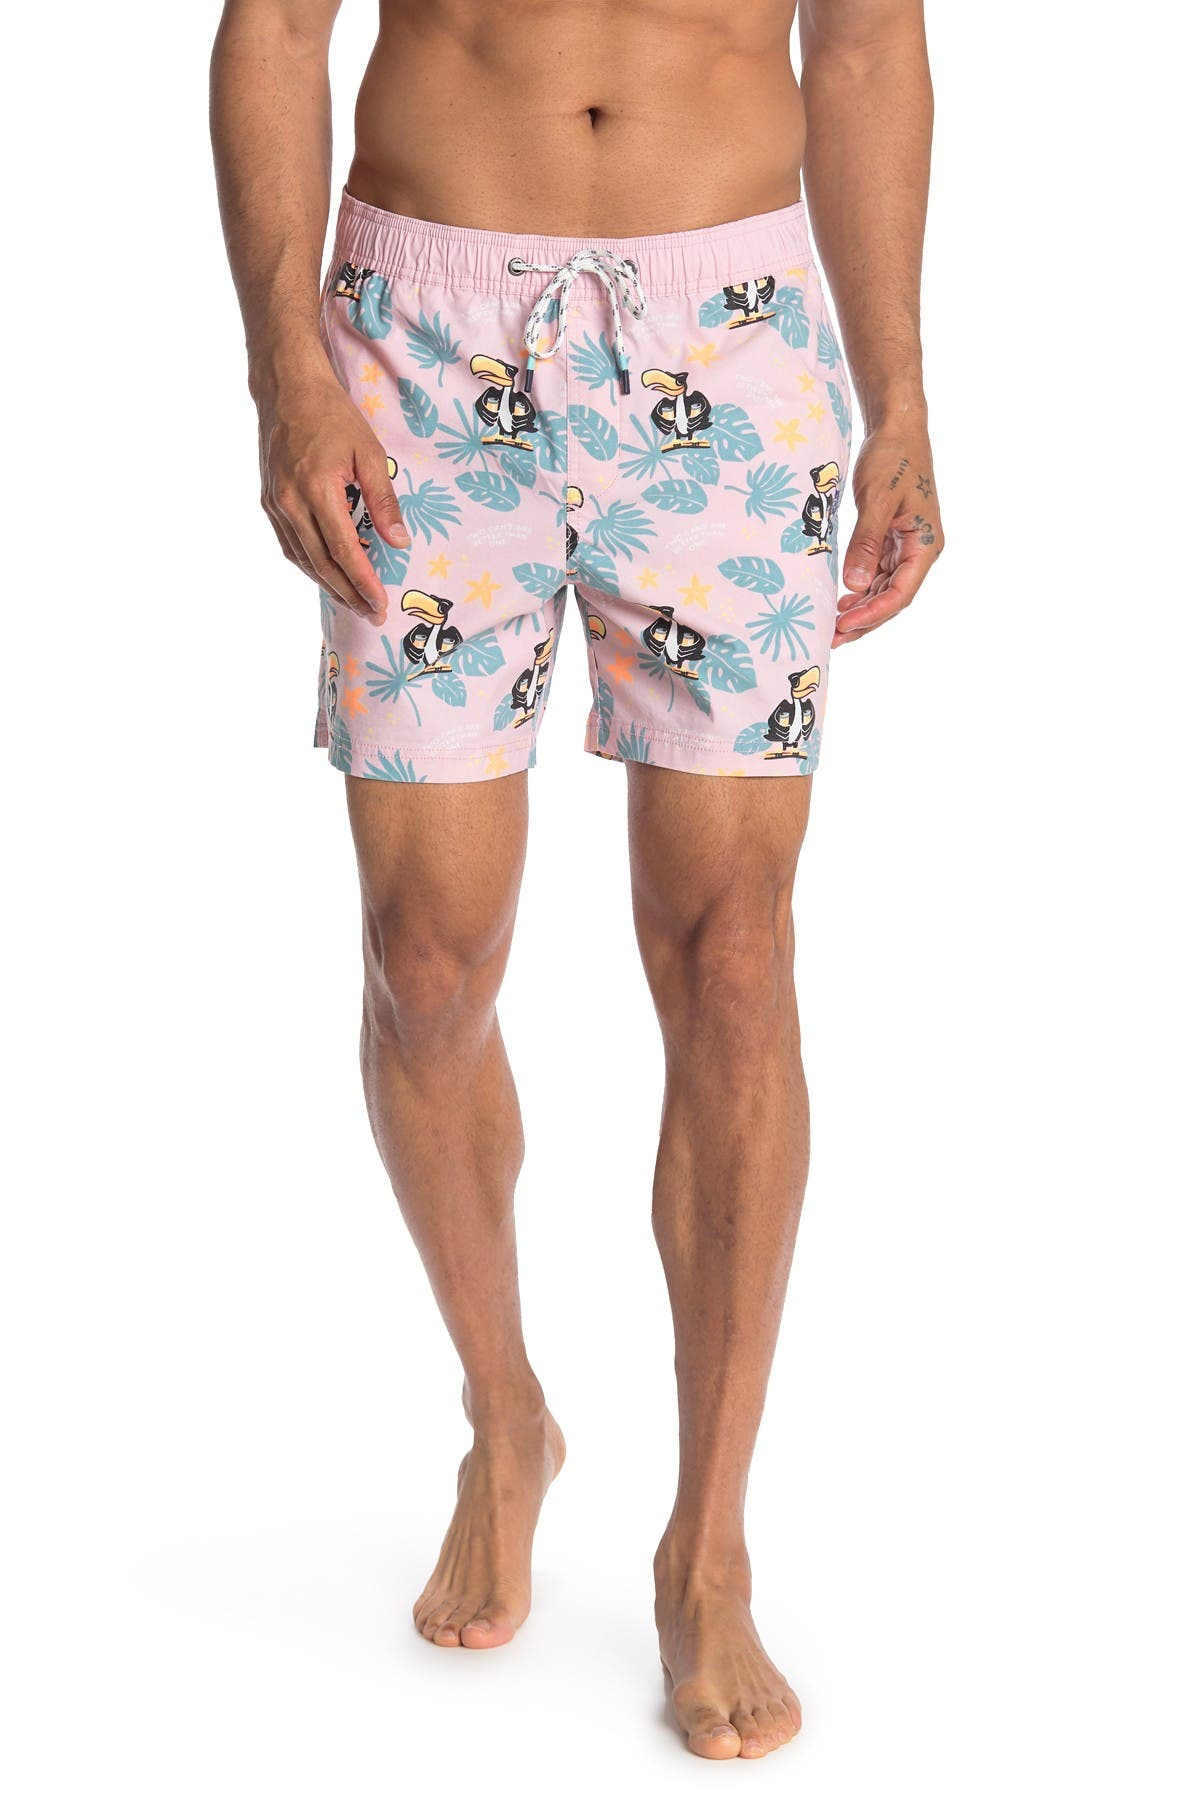 Image of PARTY PANTS Youcan Stan Swim Shorts